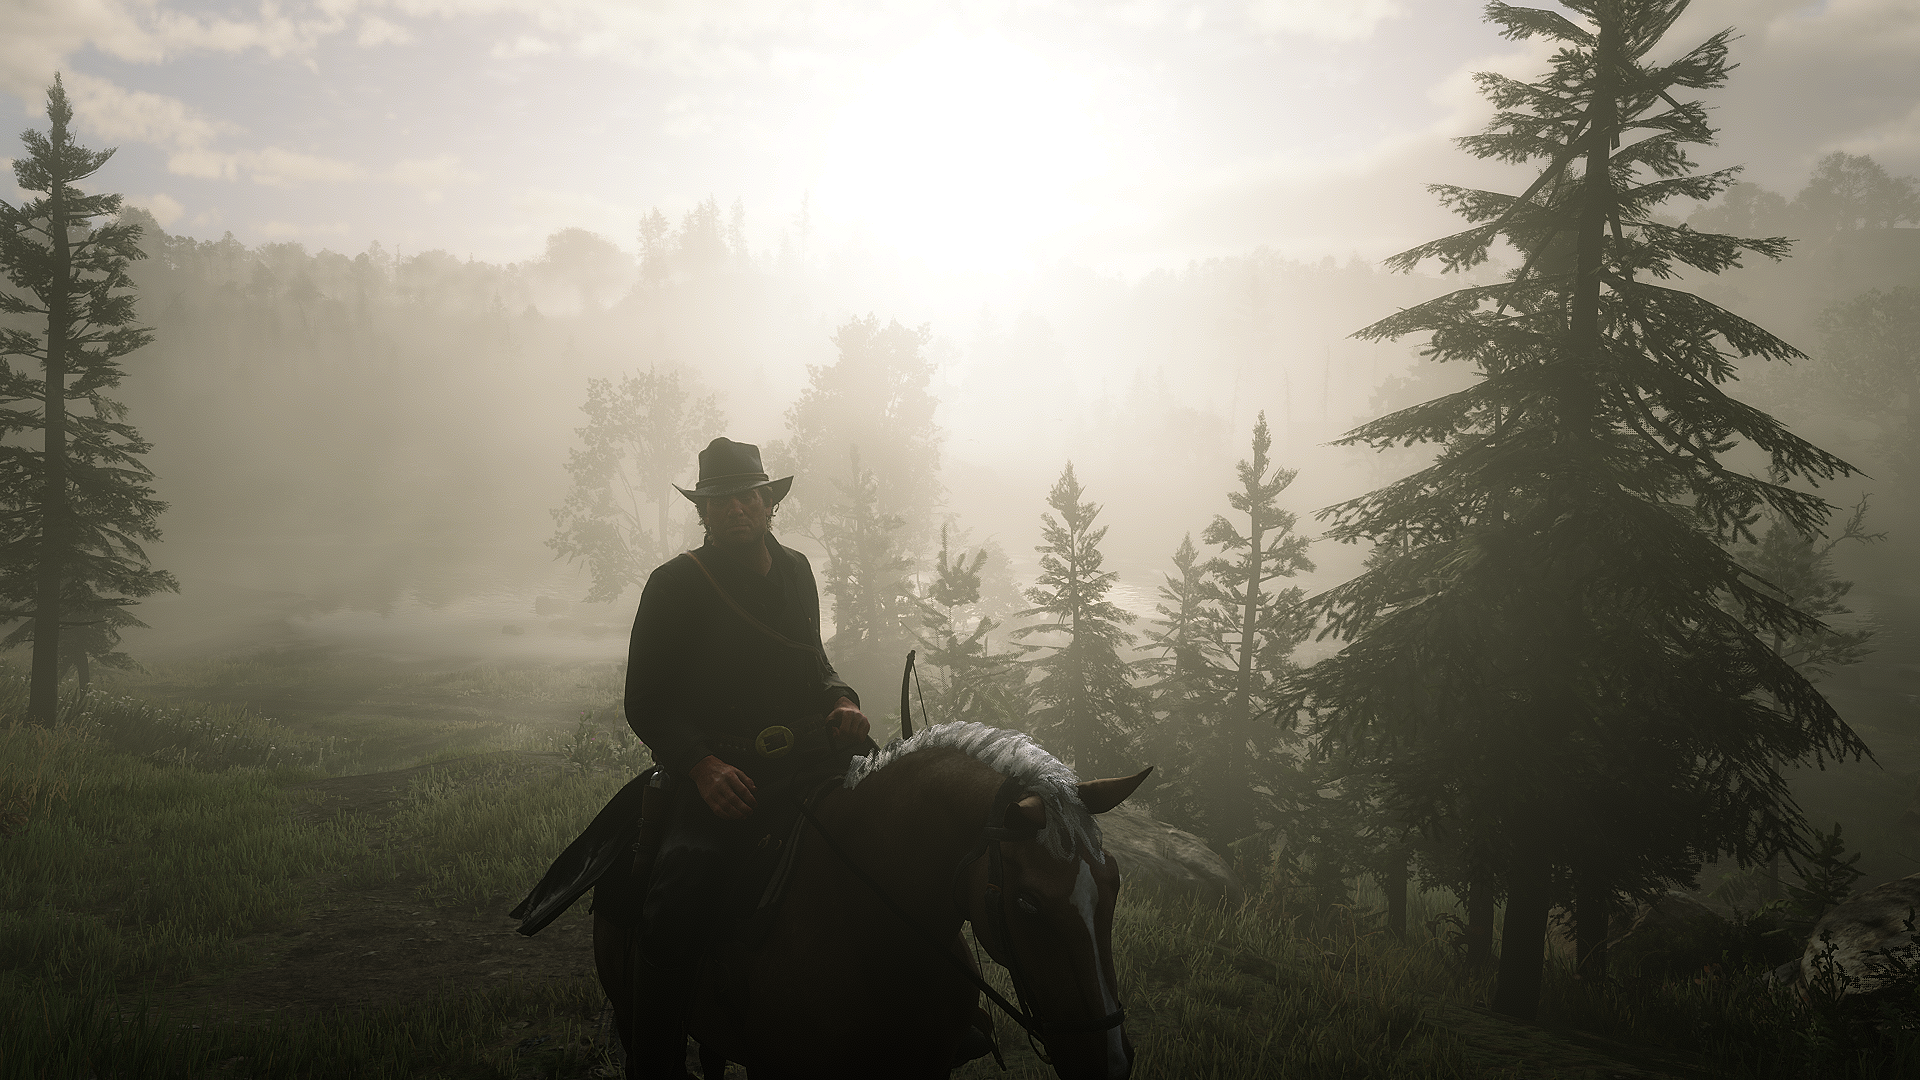 Red Dead Redemption 2 Screenshot 2020.12.30 - 21.58.29.78.png - Red Dead Redemption 2